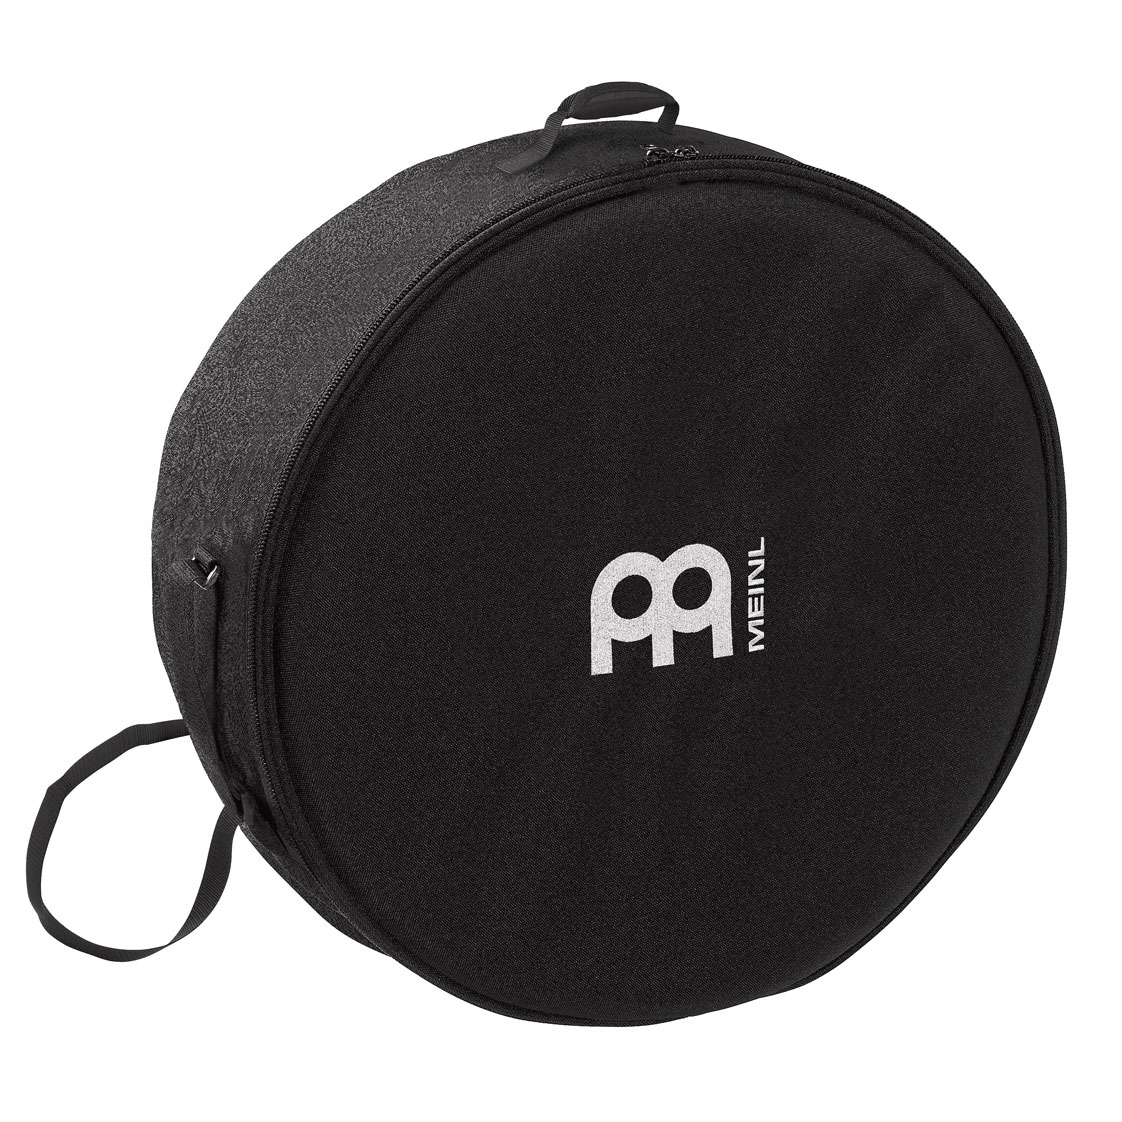 "Meinl 22"" (Diameter) x 4"" (Deep) Professional Frame Drum Bag"